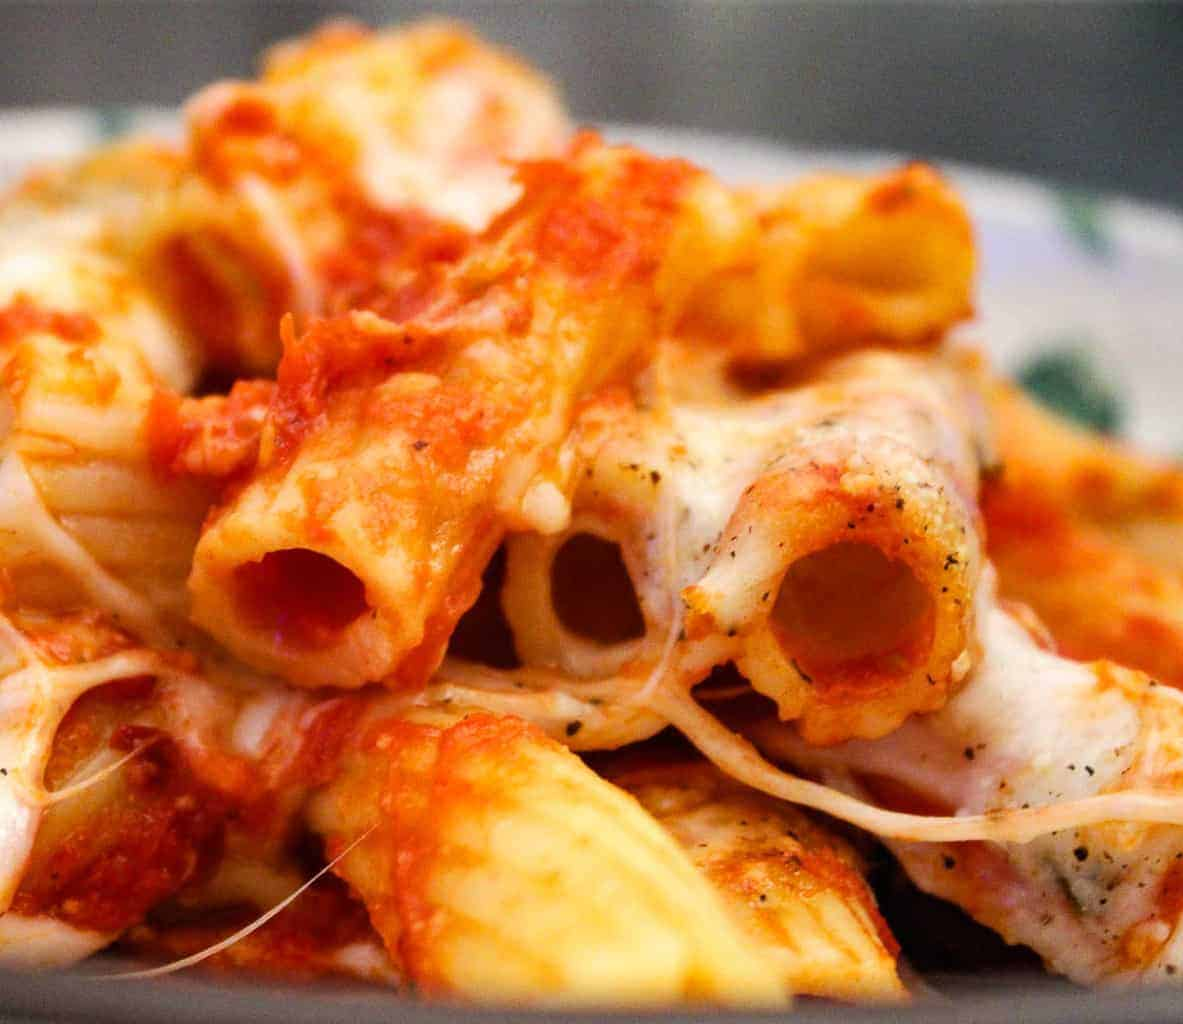 Close up of baked rigatoni with tomato sauce and cheese